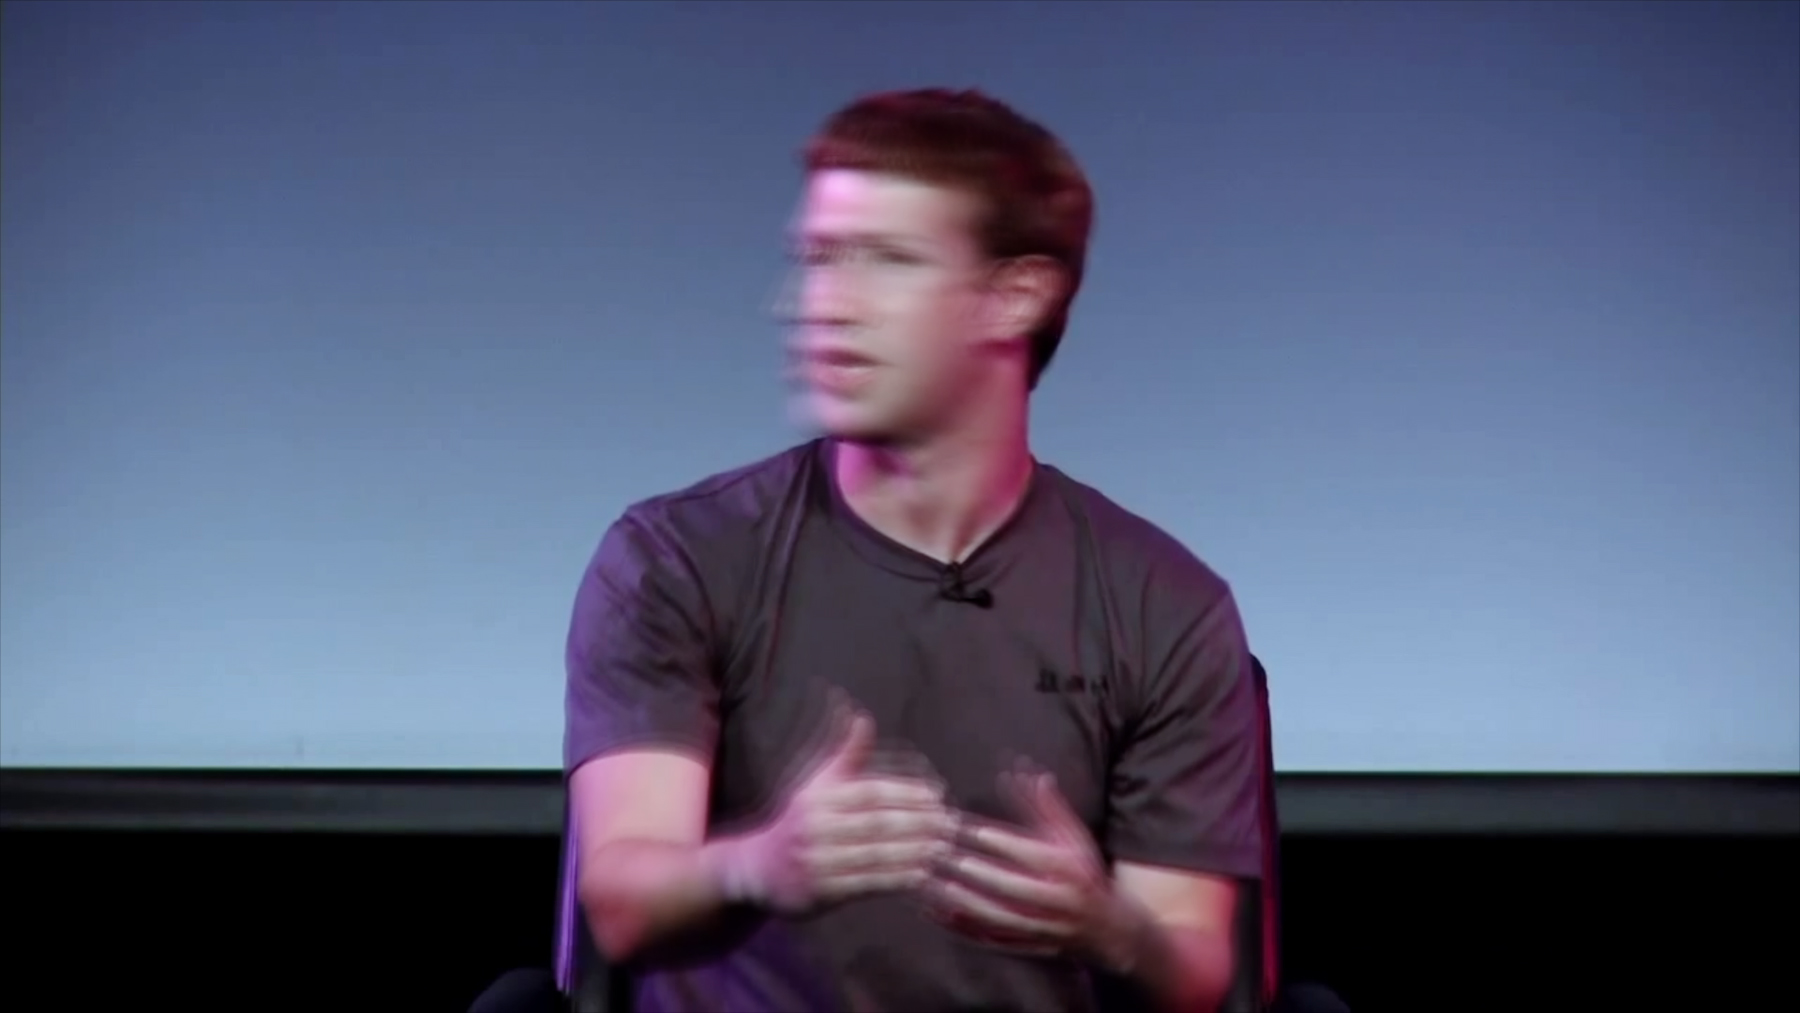 """The video supercut """"DEFICIT OF LESS"""" examines how often Facebook CEO Mark Zuckerberg uses the word """"less"""" – under a minute total in 15 years of footage. Image courtesy Ben Grosser"""